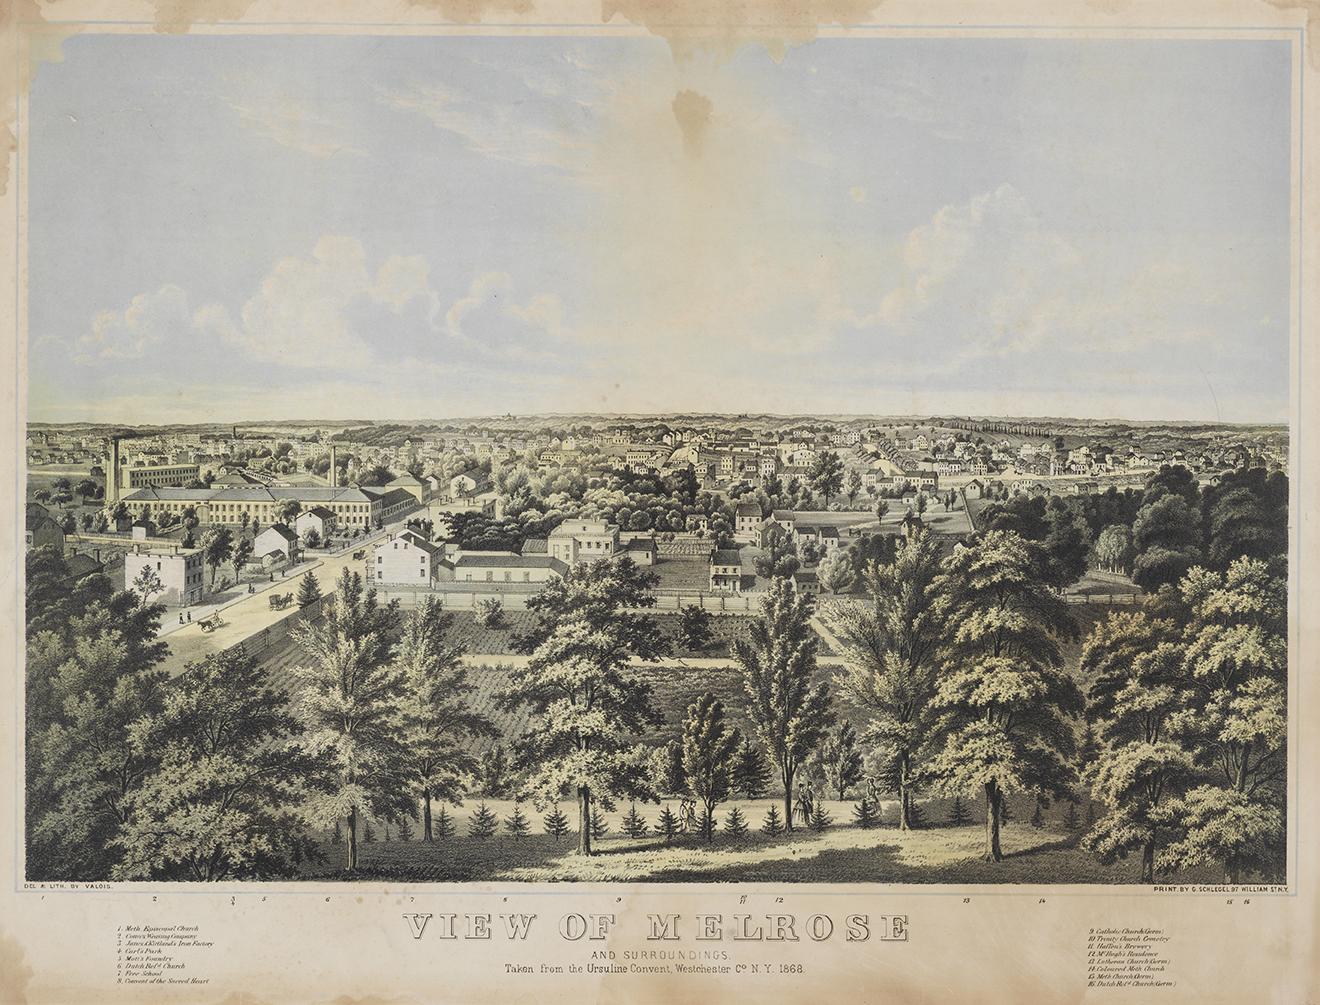 A view of Melrose, Lithograph, 1868